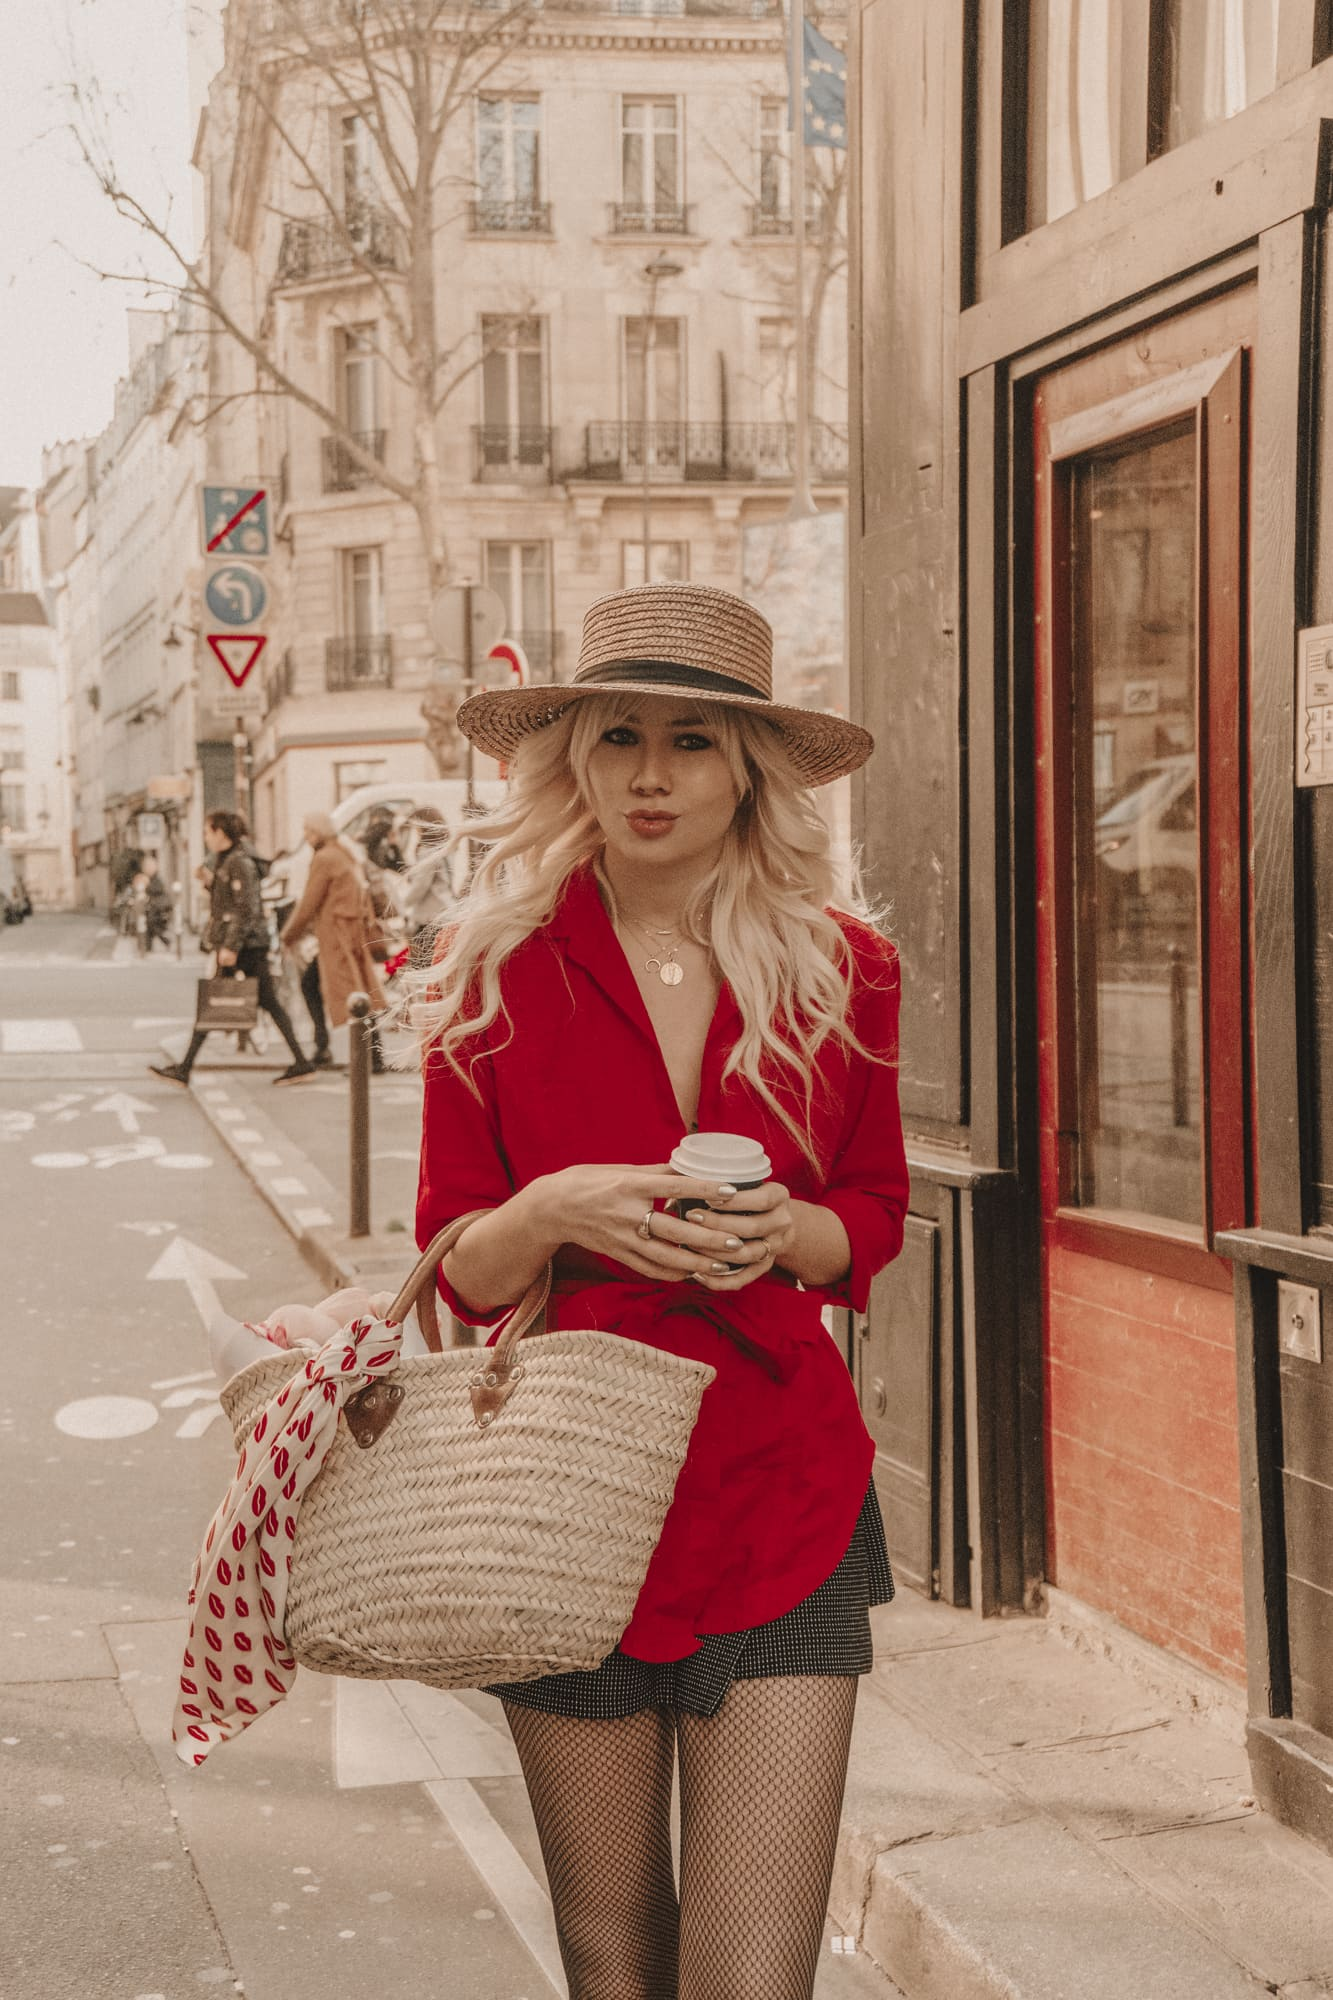 Sarah Loven tours Boulevard Saint Germain